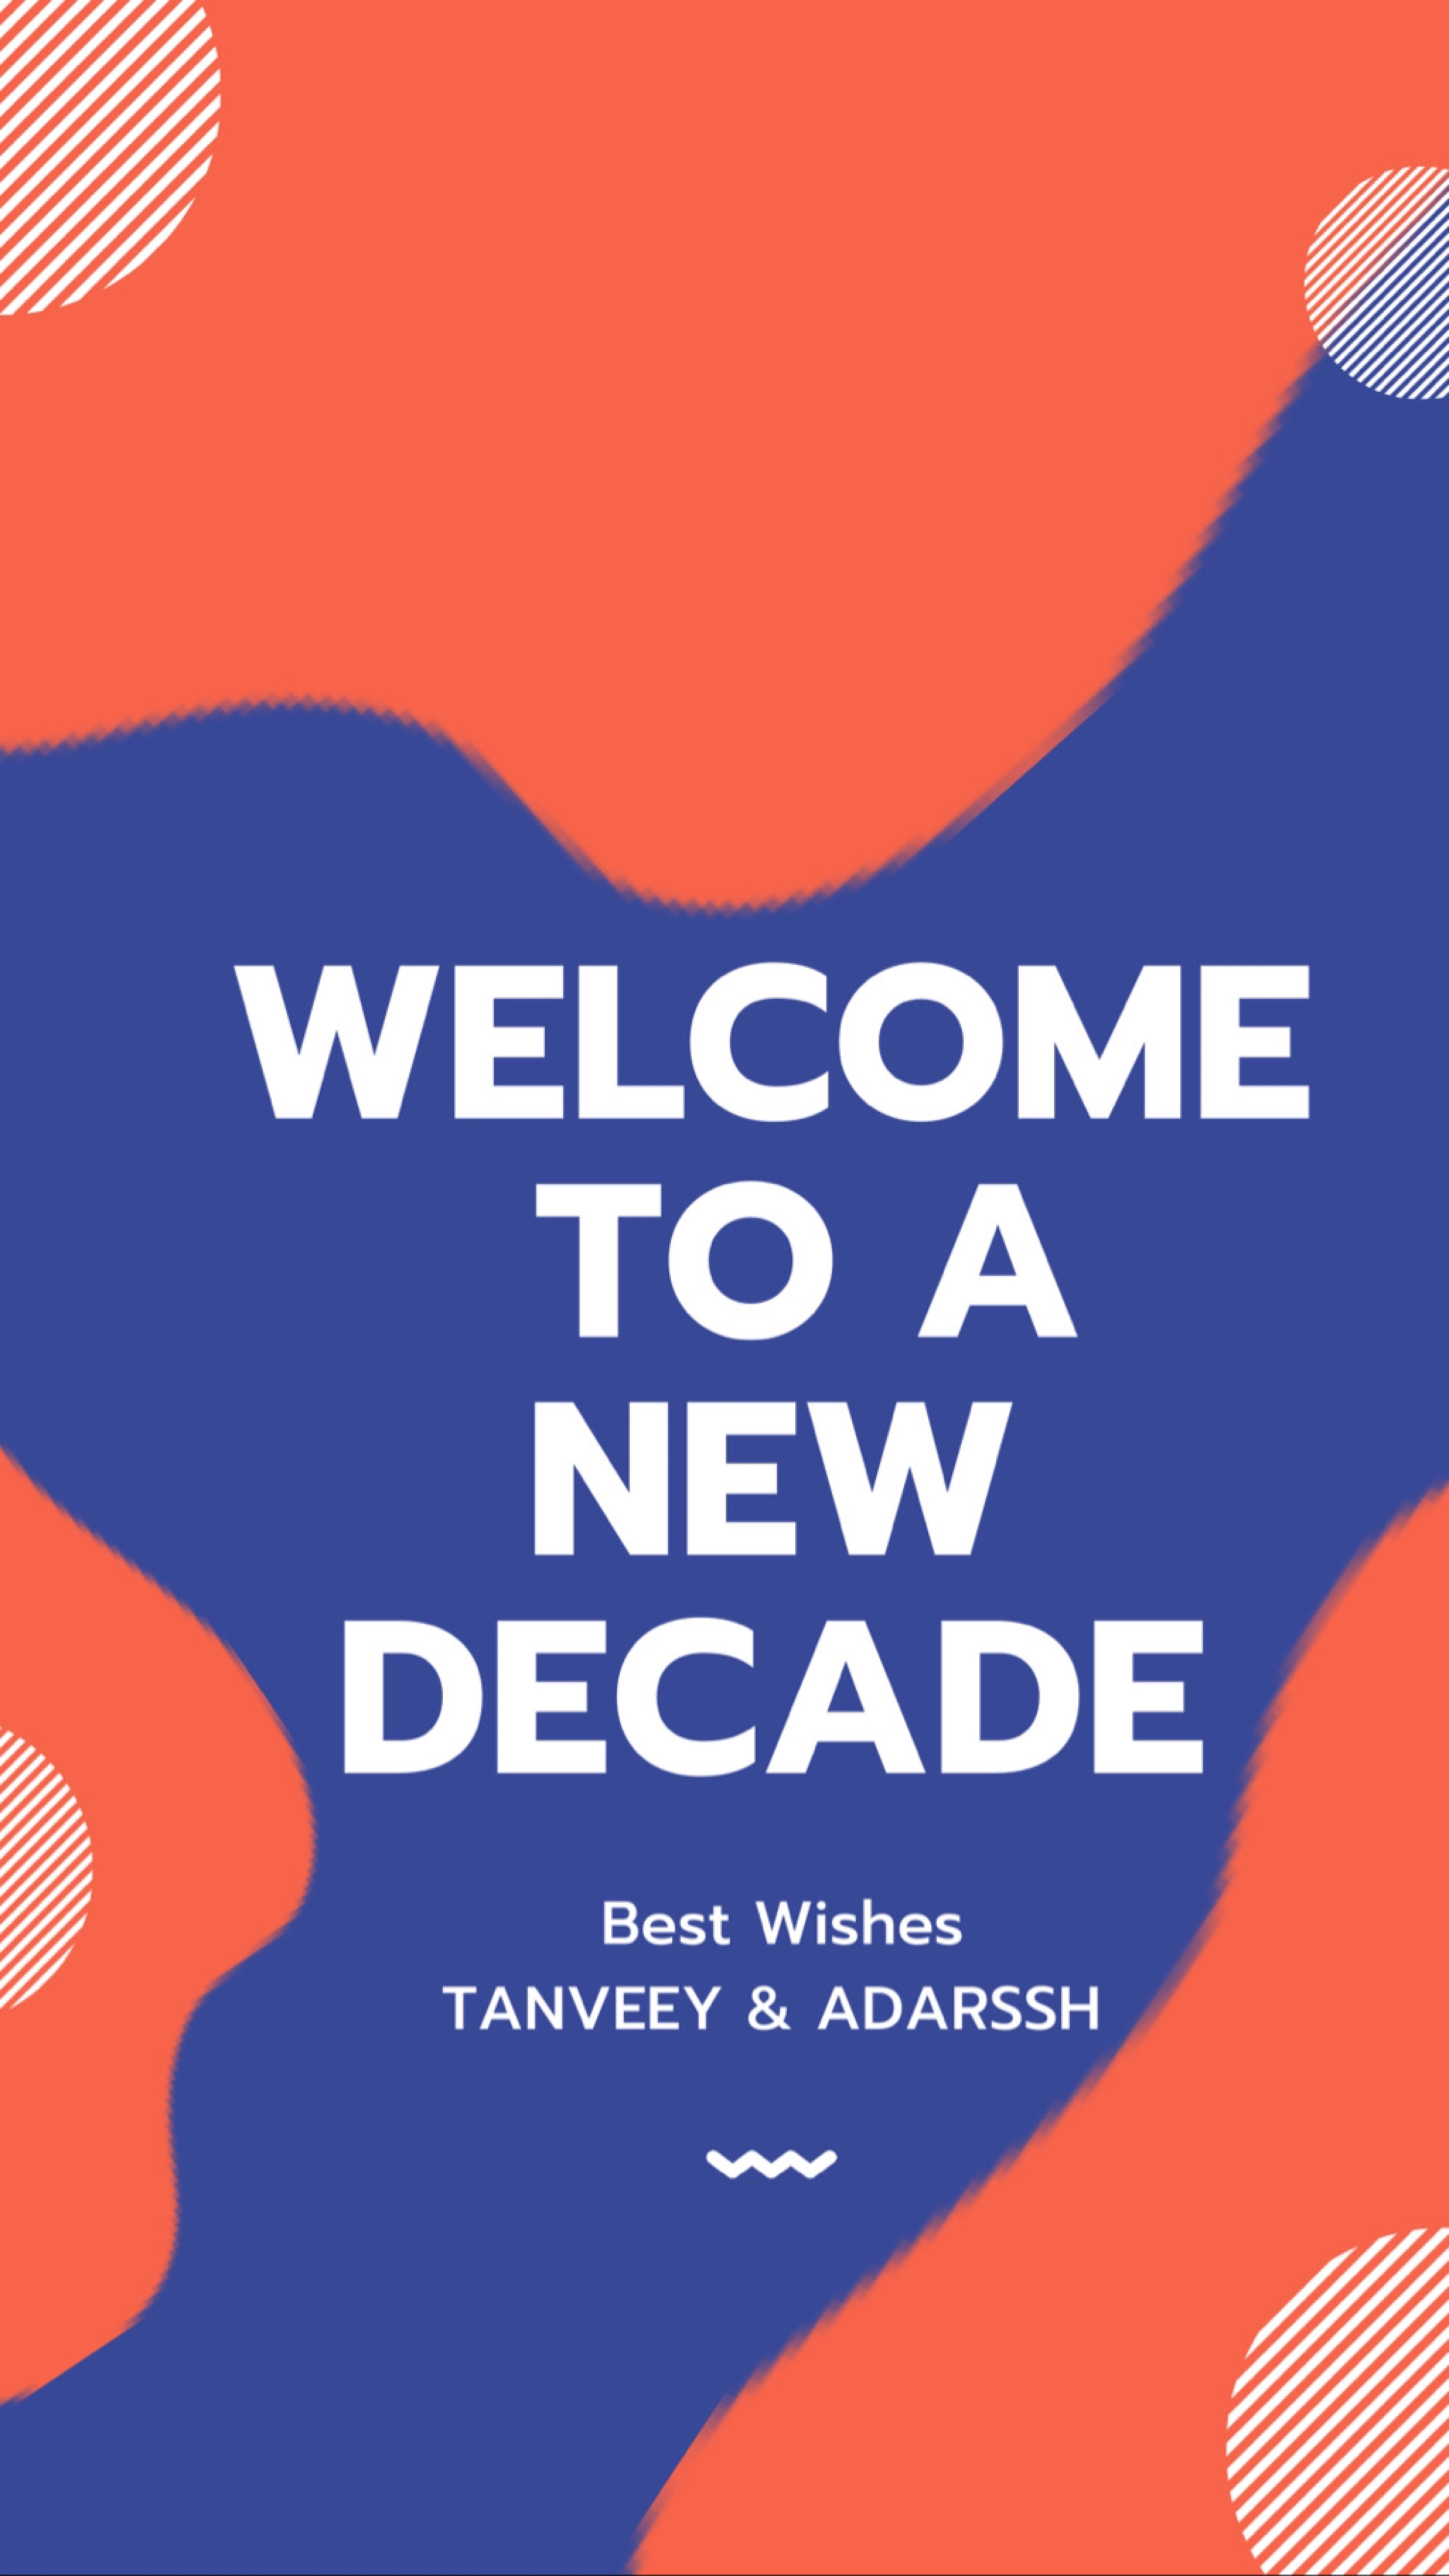 Welcome to A NEW DECADE ✨🌝✨  #newyear  #bestwishes